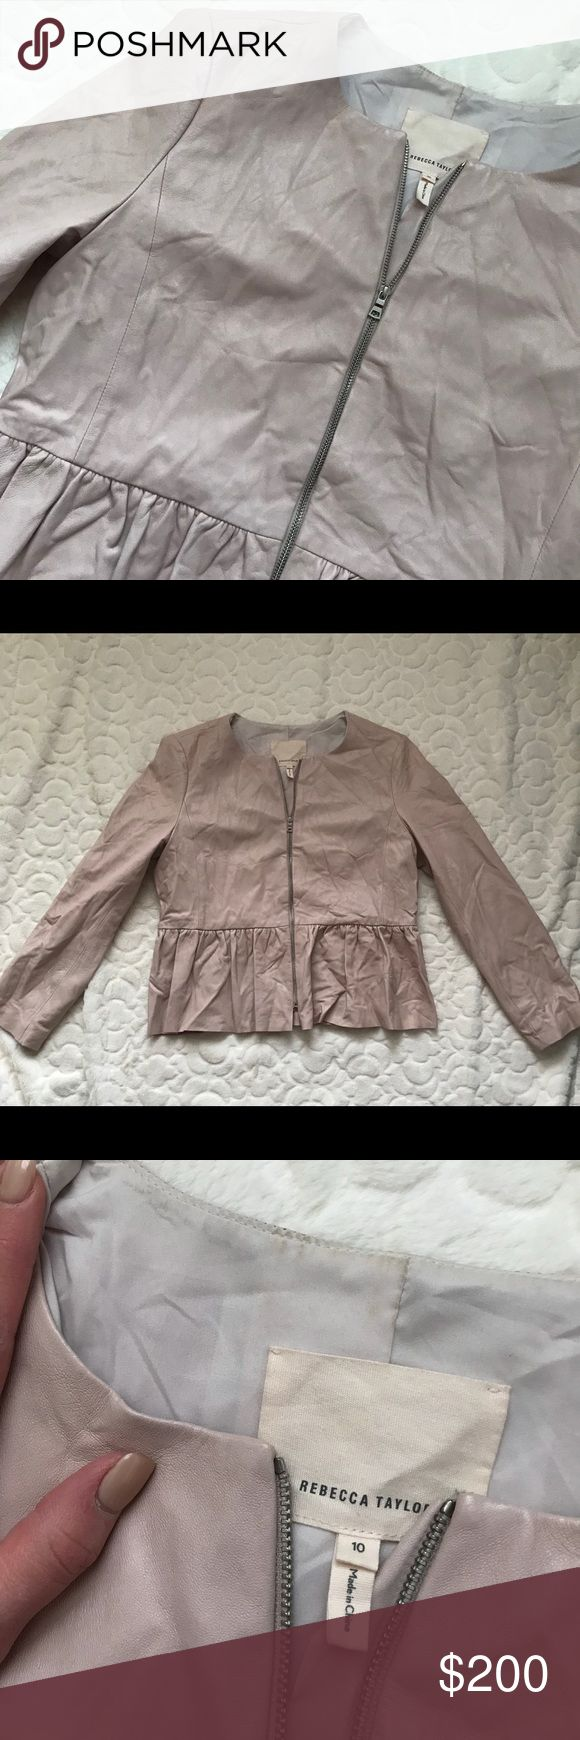 Rebecca Taylor Lamb Leather peplum jacket Authentic Rebecca Taylor Peplum Jacket 100% Lamb Leather Flaws: 2 small holes under armpit (pictured) Discoloration inside jacket at collar (pictured) Discoloration of suede lining inside jacket (pictured) Jacket is sold AS IS. This item is damaged.   Retail price $995 Rebecca Taylor Jackets & Coats